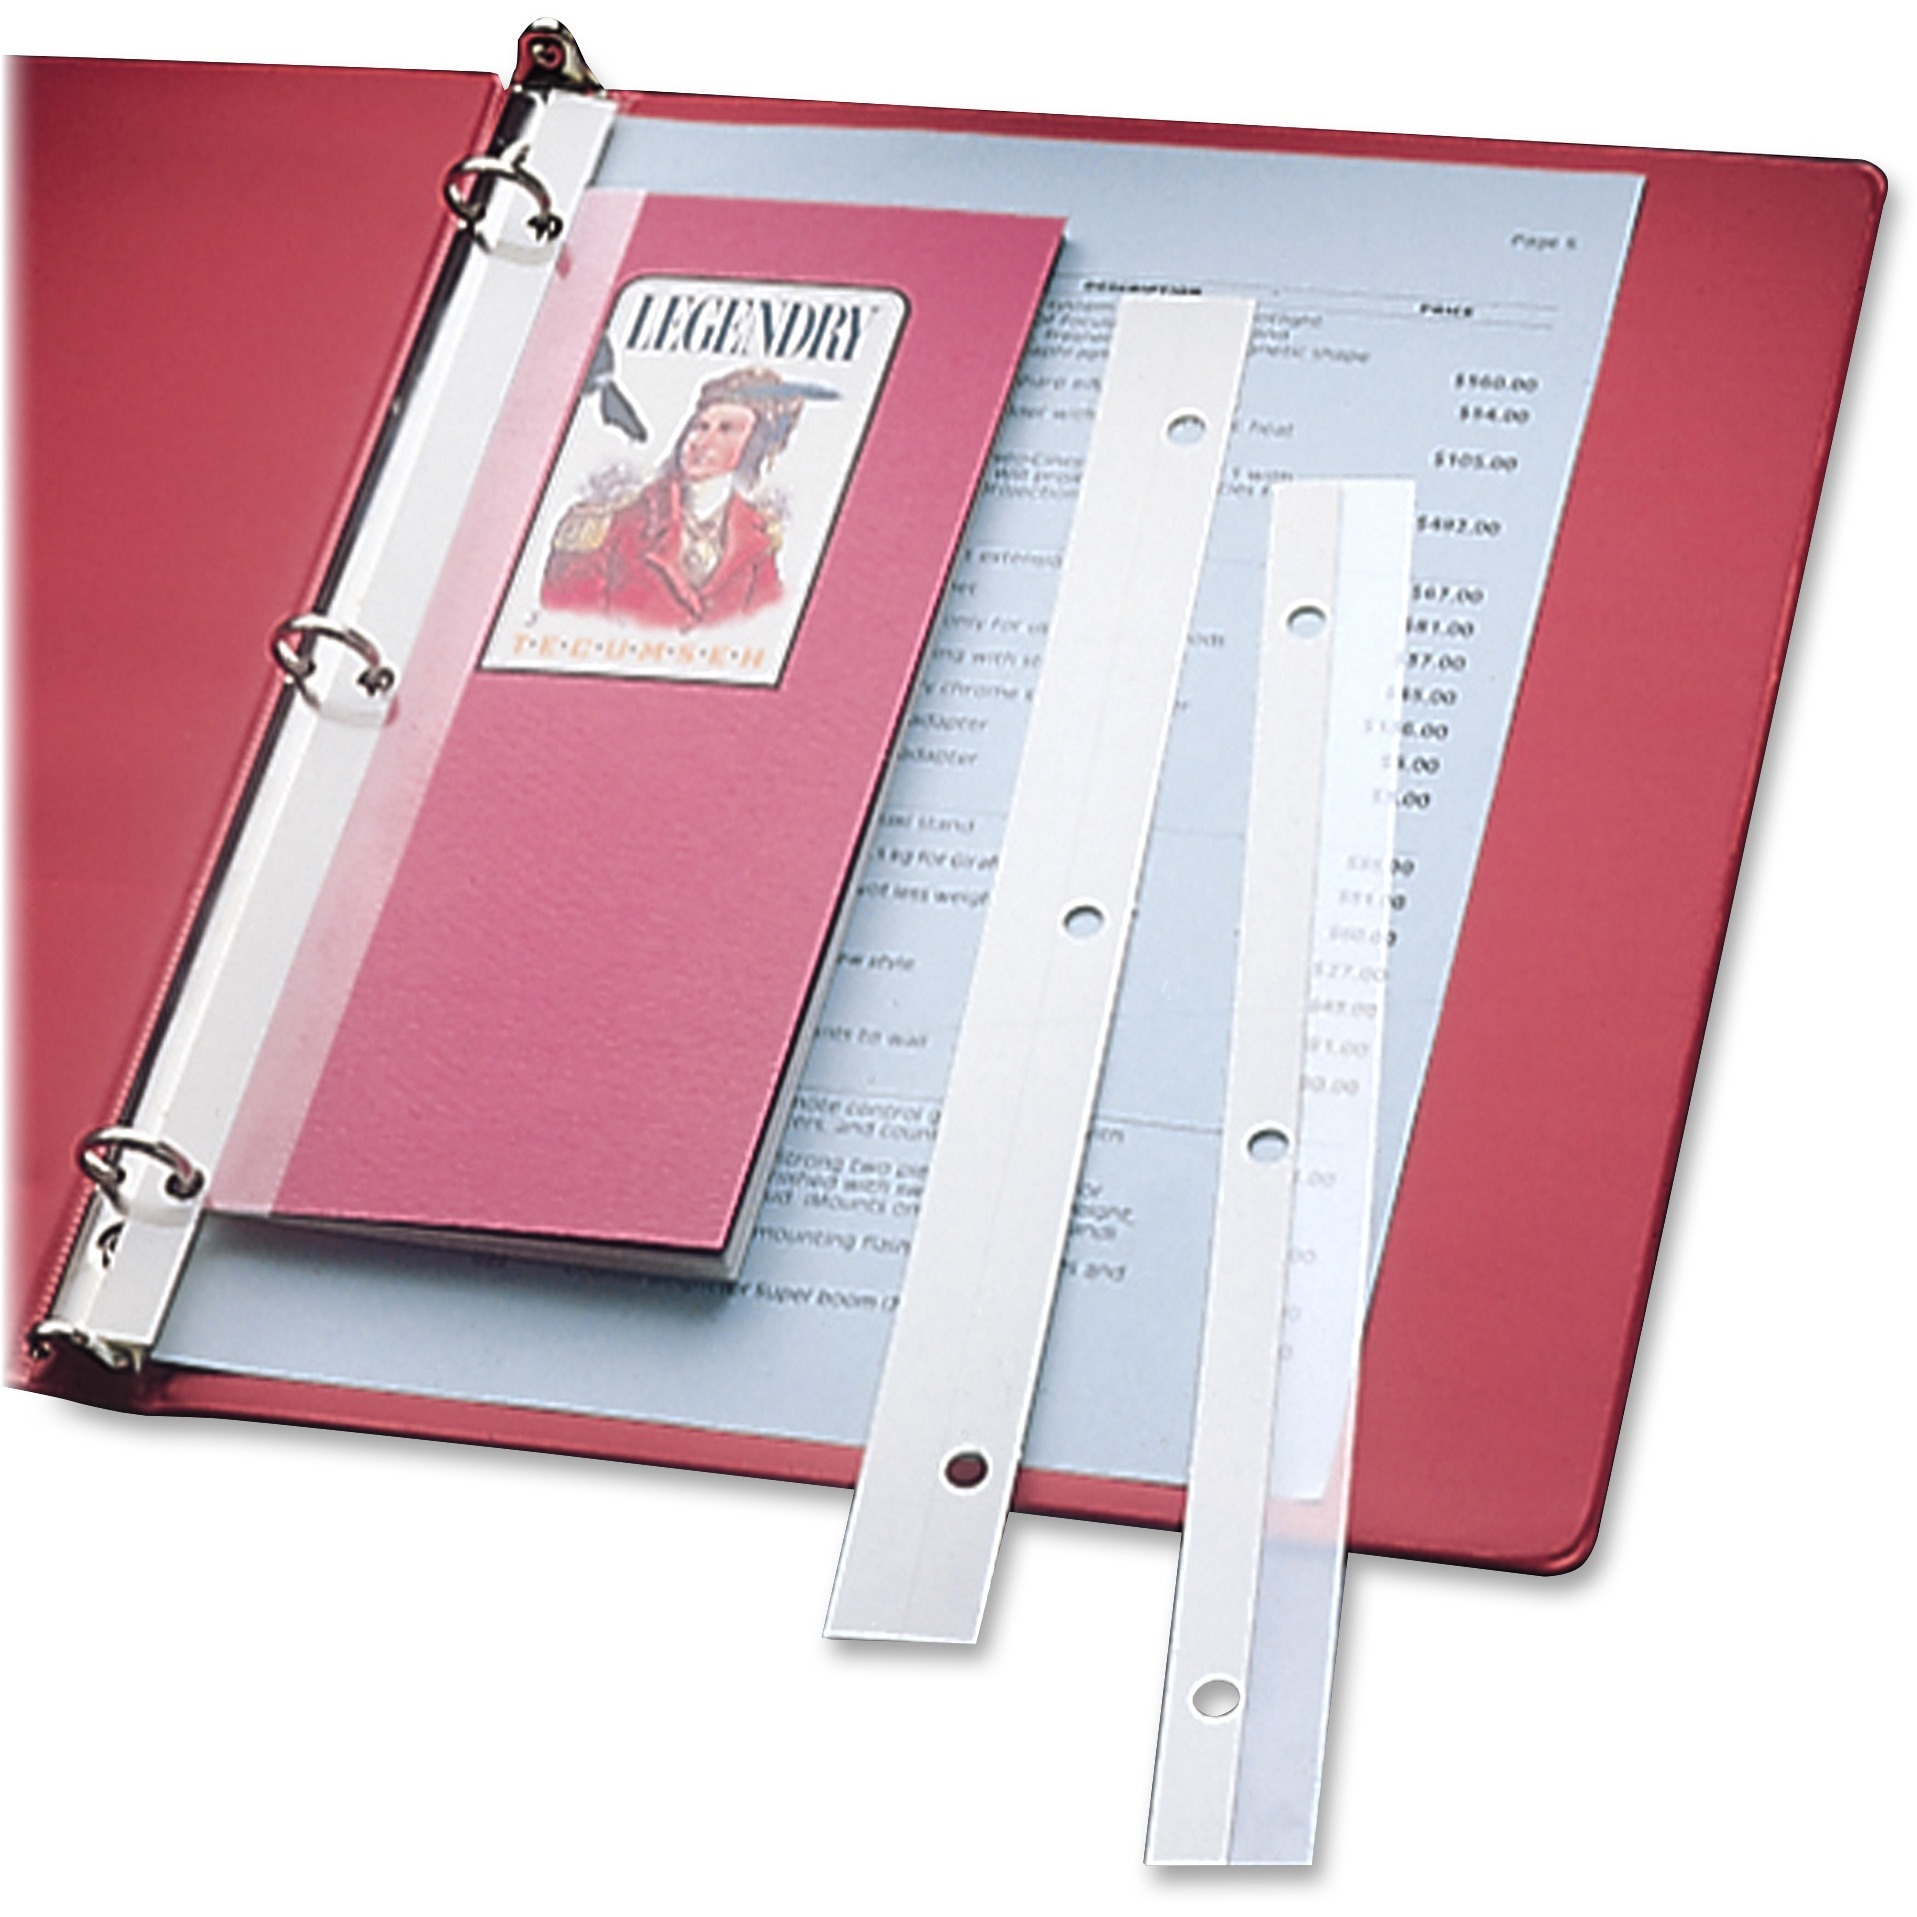 Self-Adhesive Attaching Strips, 3-Hole Punched, 11 x 1, 200/BX